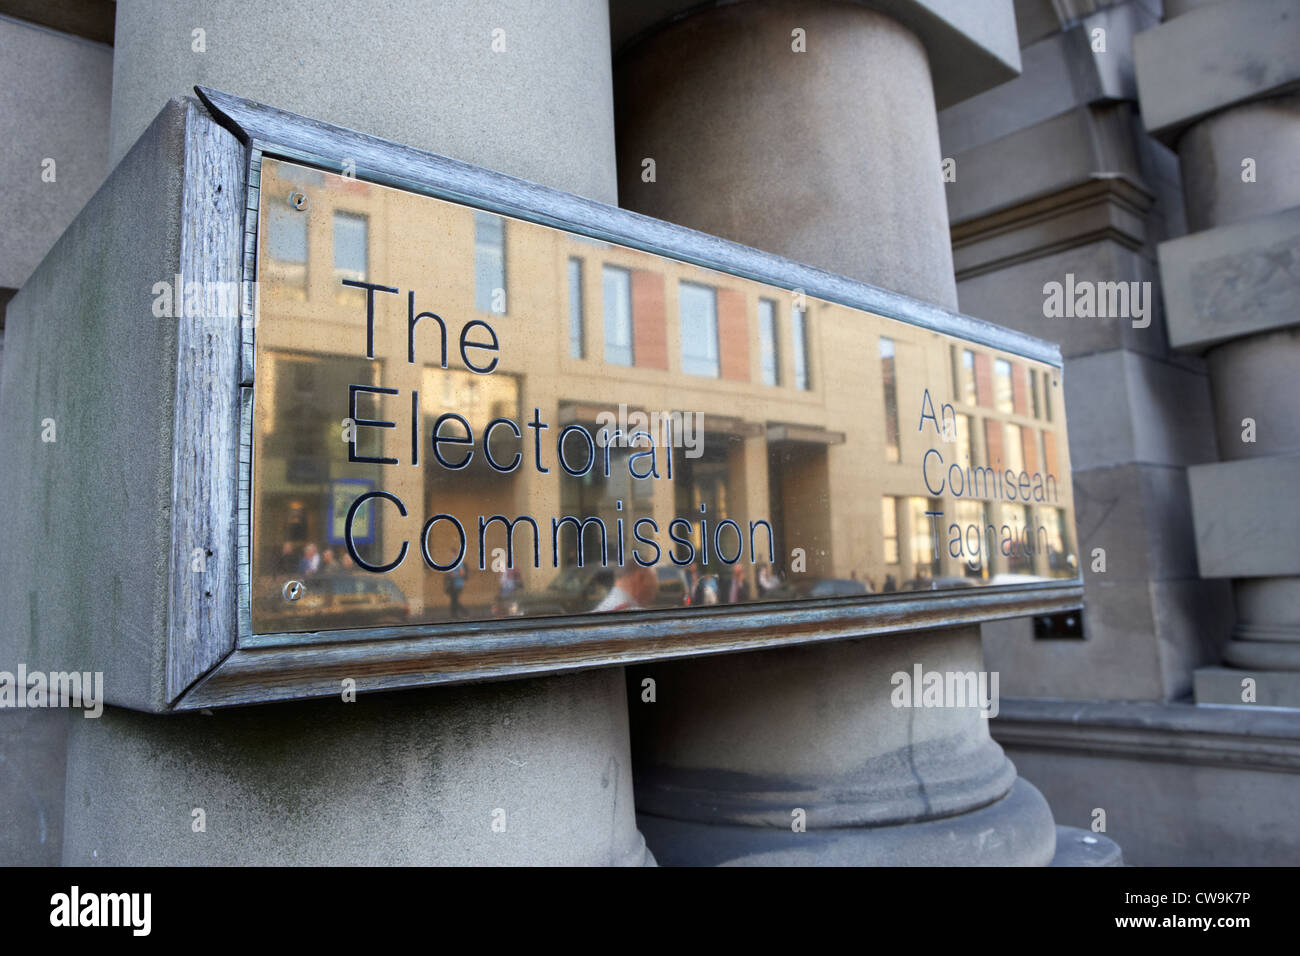 the electoral commission an coimisean taghaidh edinburgh scotland uk united kingdom Stock Photo